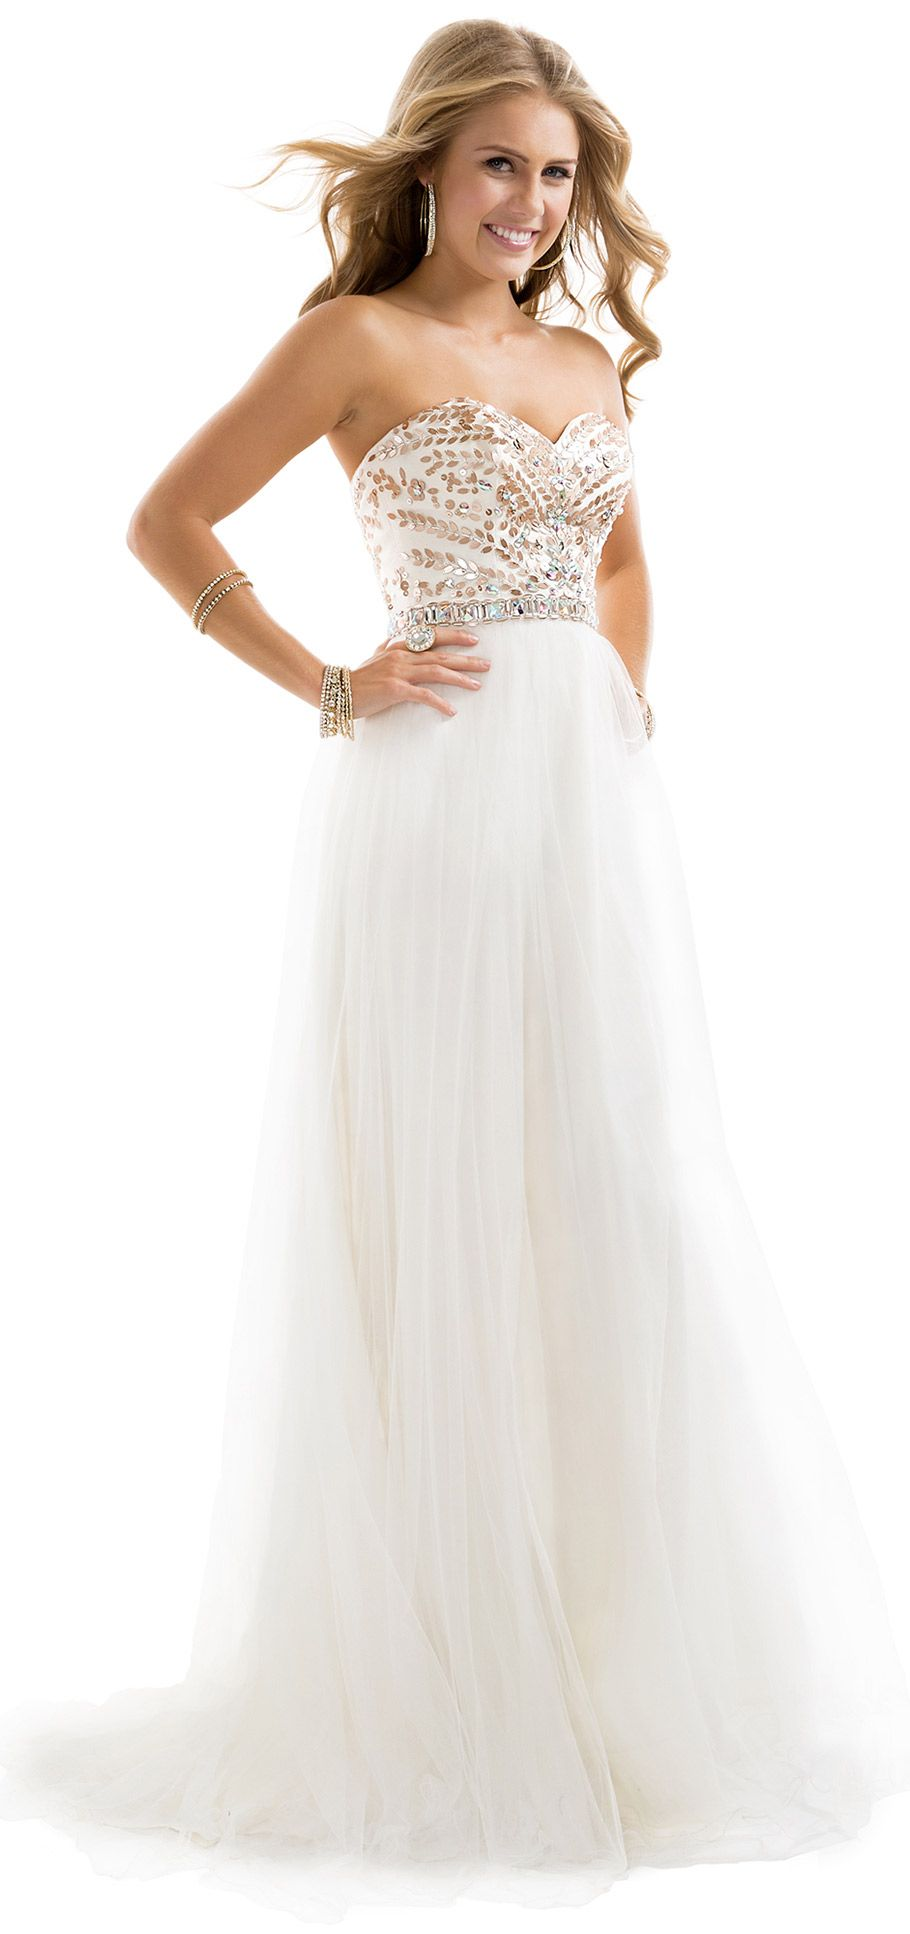 White and rose gold evening dress with sweetheart neckline from